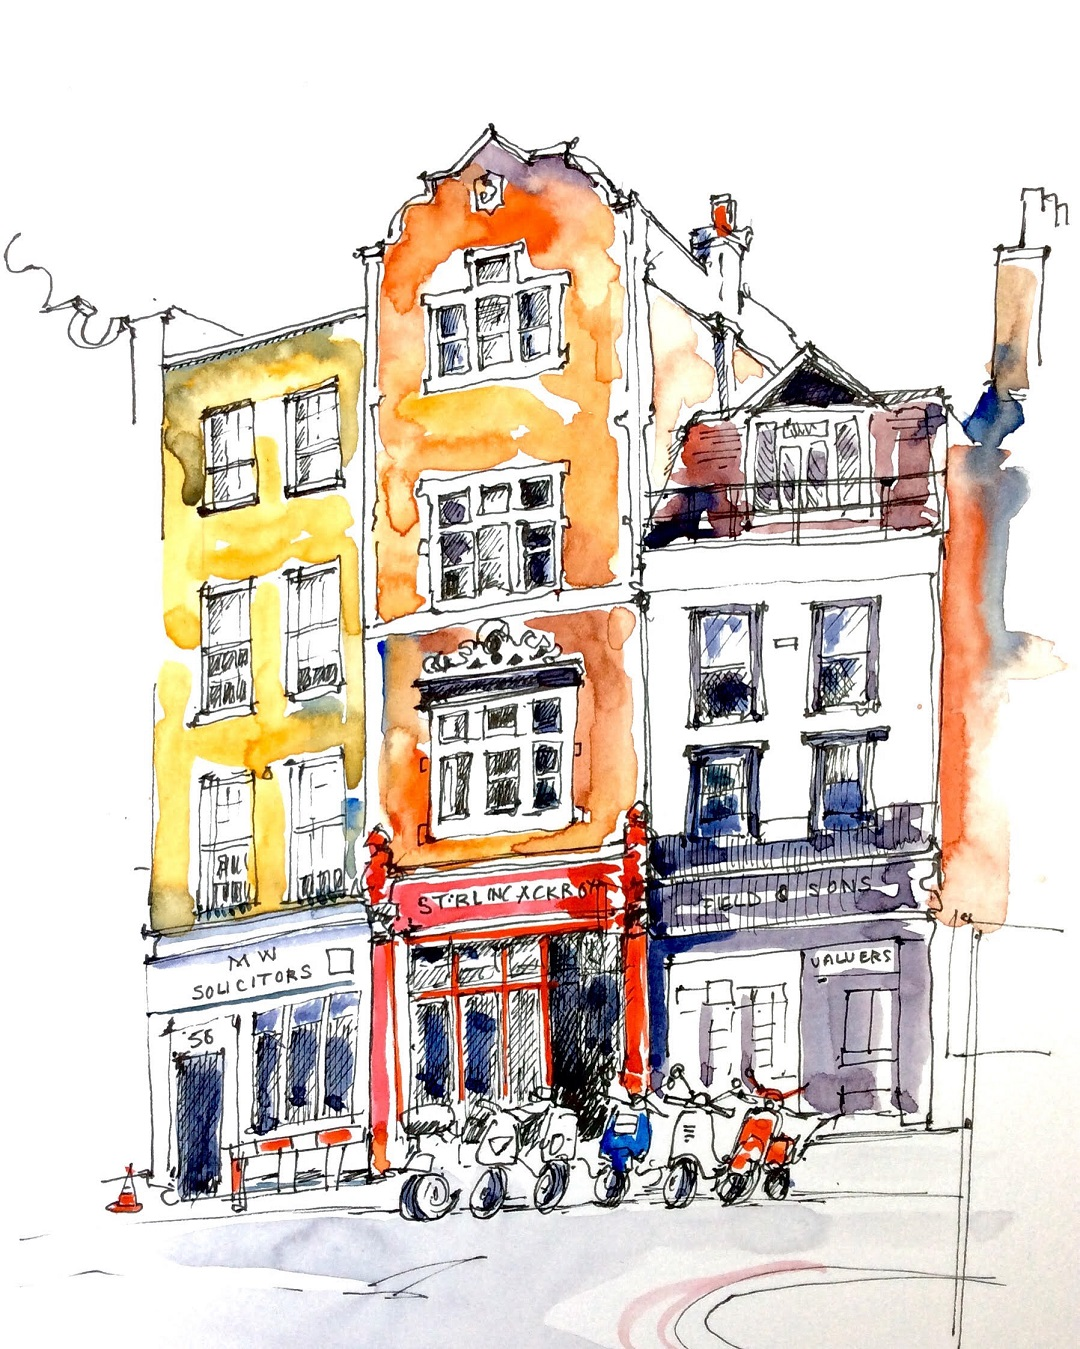 Borough High Street, London, March 2016 Katie Clare Pen and Wash, drawn in the artist's Moleskine watercolour sketchbook, 13 x 21 cm